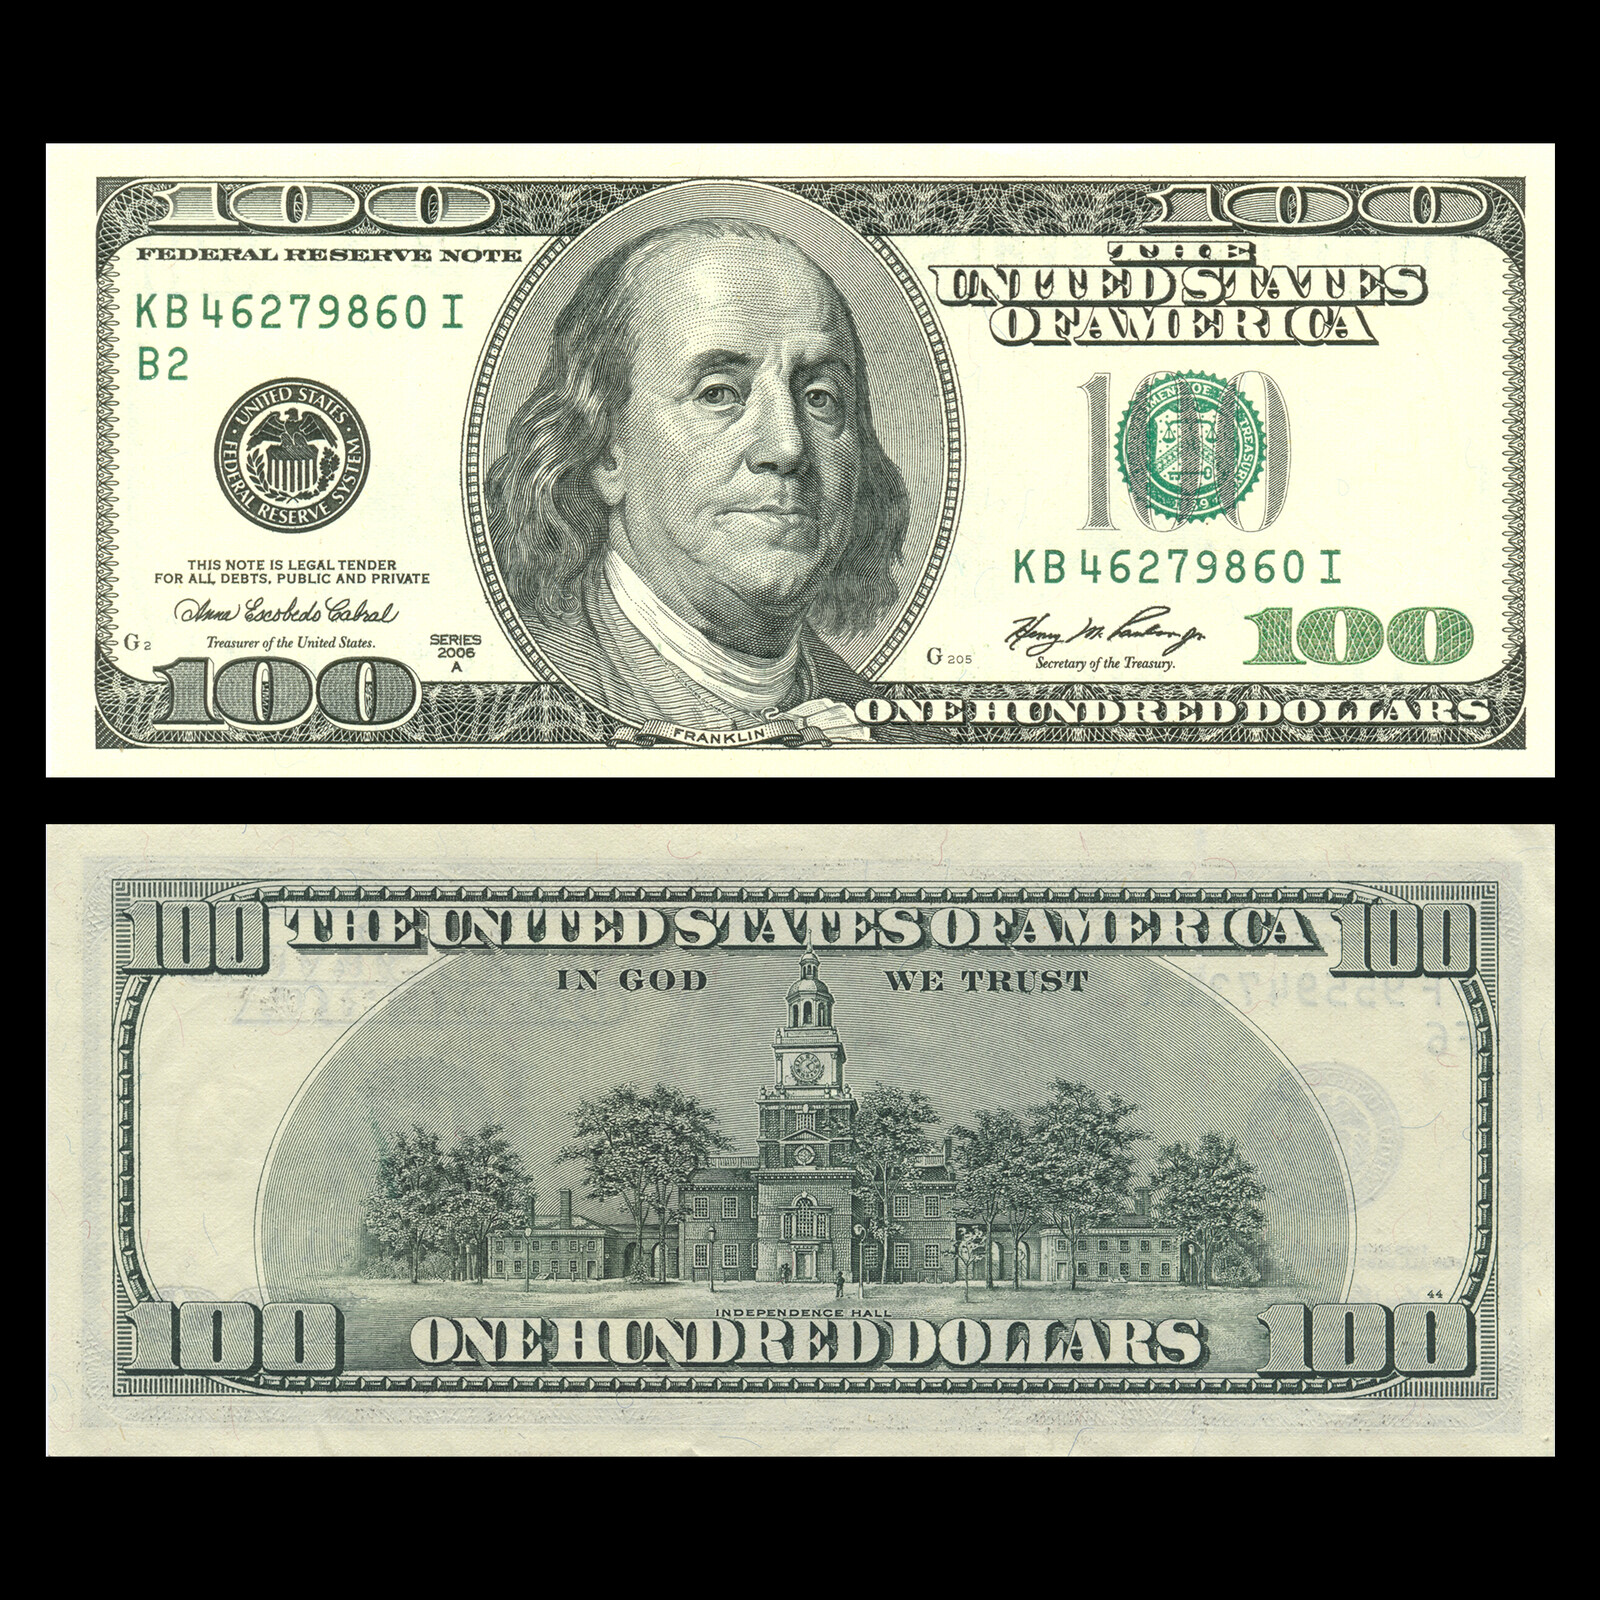 Images of front and back of US $100 bill used as bitmaps to generate the textures.